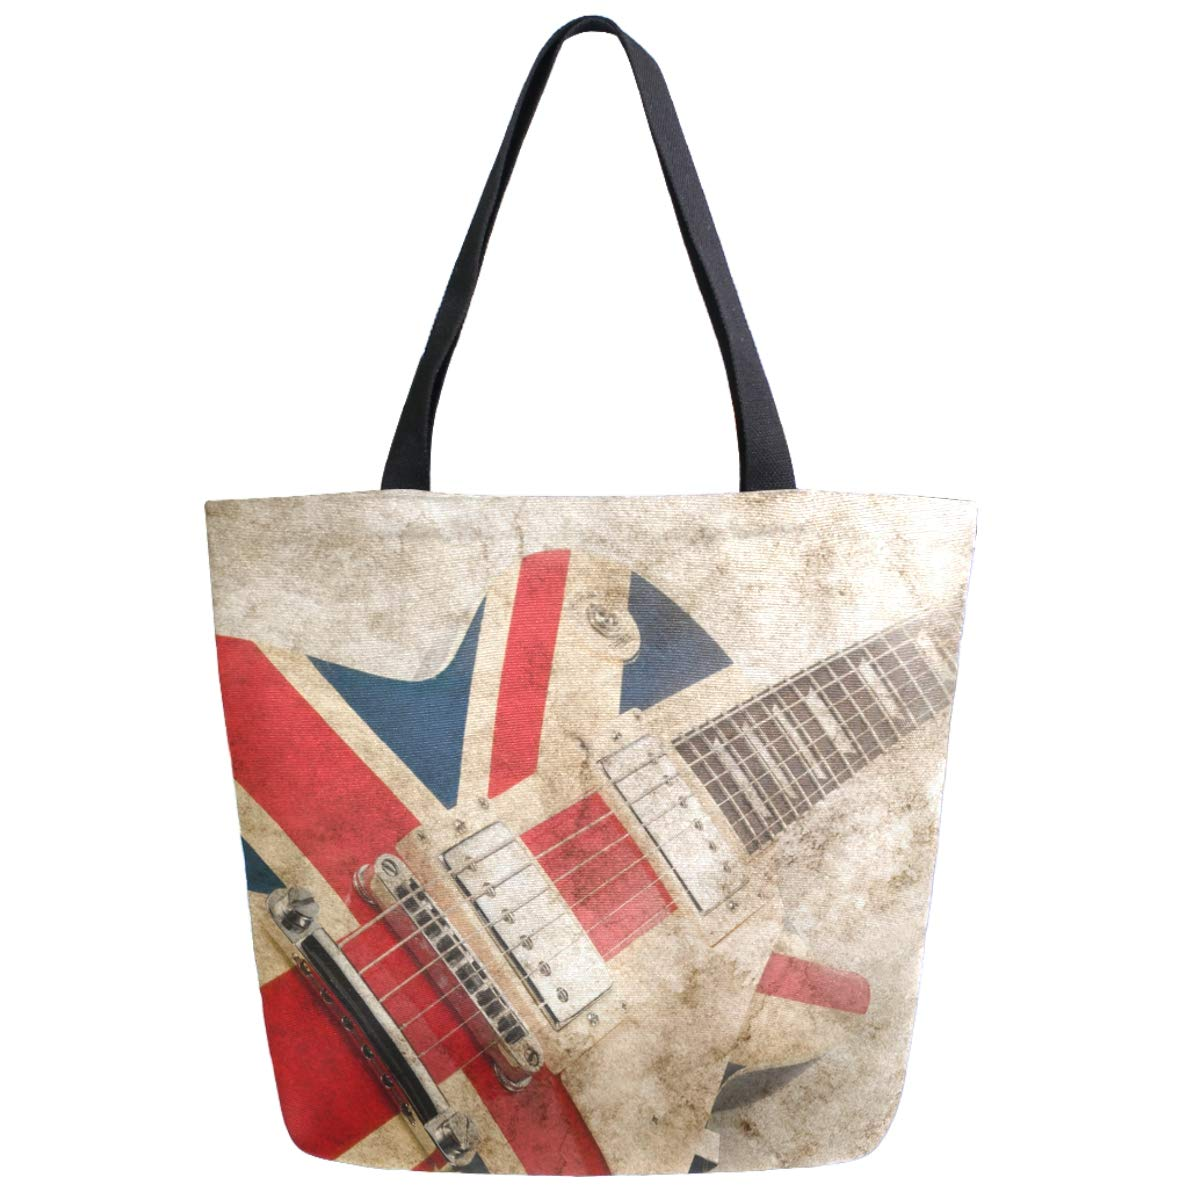 ZzWwR Stylish Grunge British Pop Guitar Print Extra Large Canvas Beach Travel Reusable Grocery Shopping Tote Bag for Women Girls